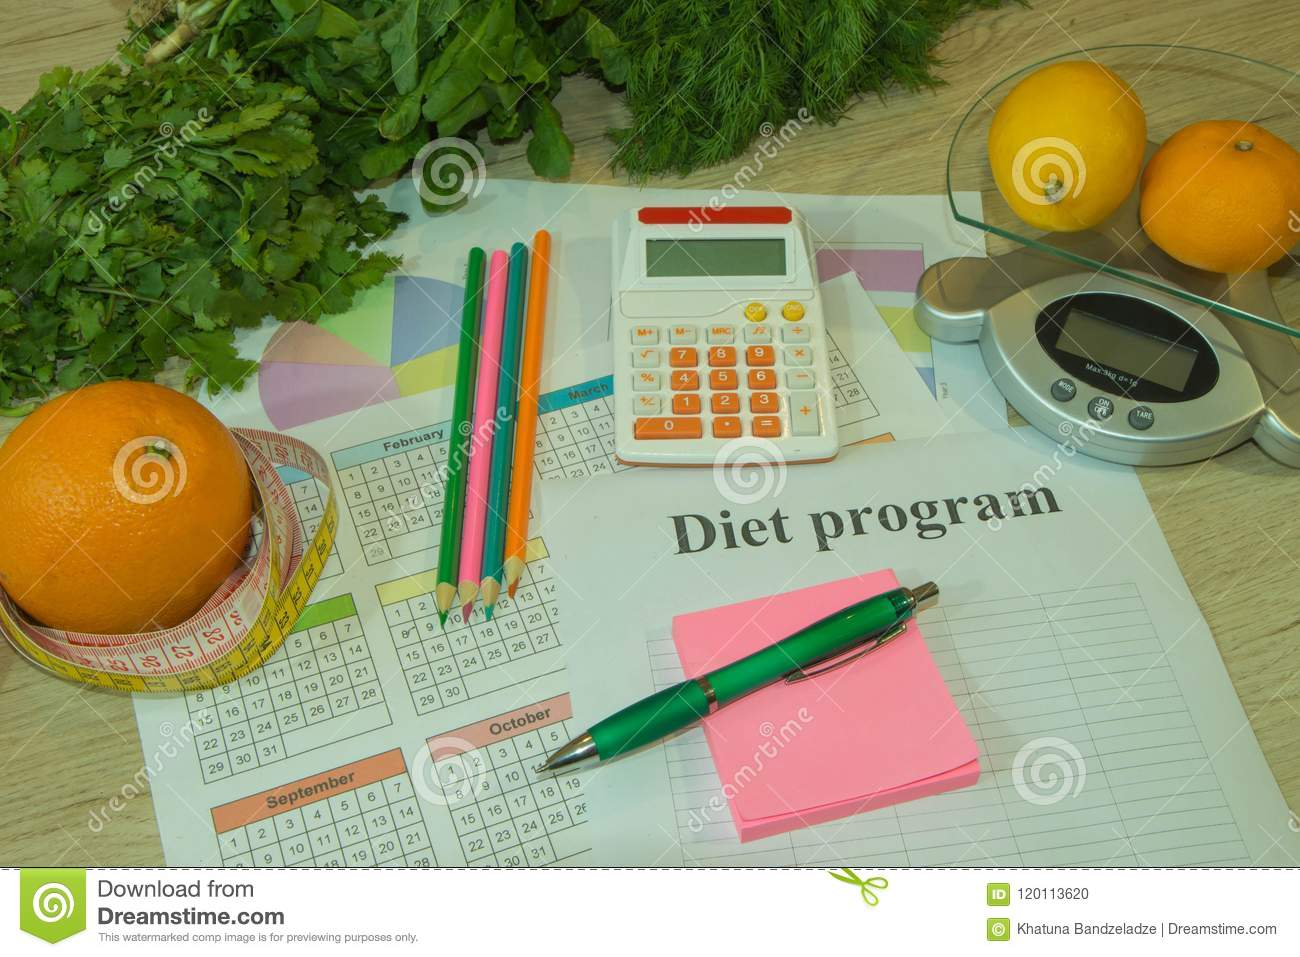 Awesome Concept Diet And Weight Loss Fruits Vegetables And Download Free Architecture Designs Scobabritishbridgeorg